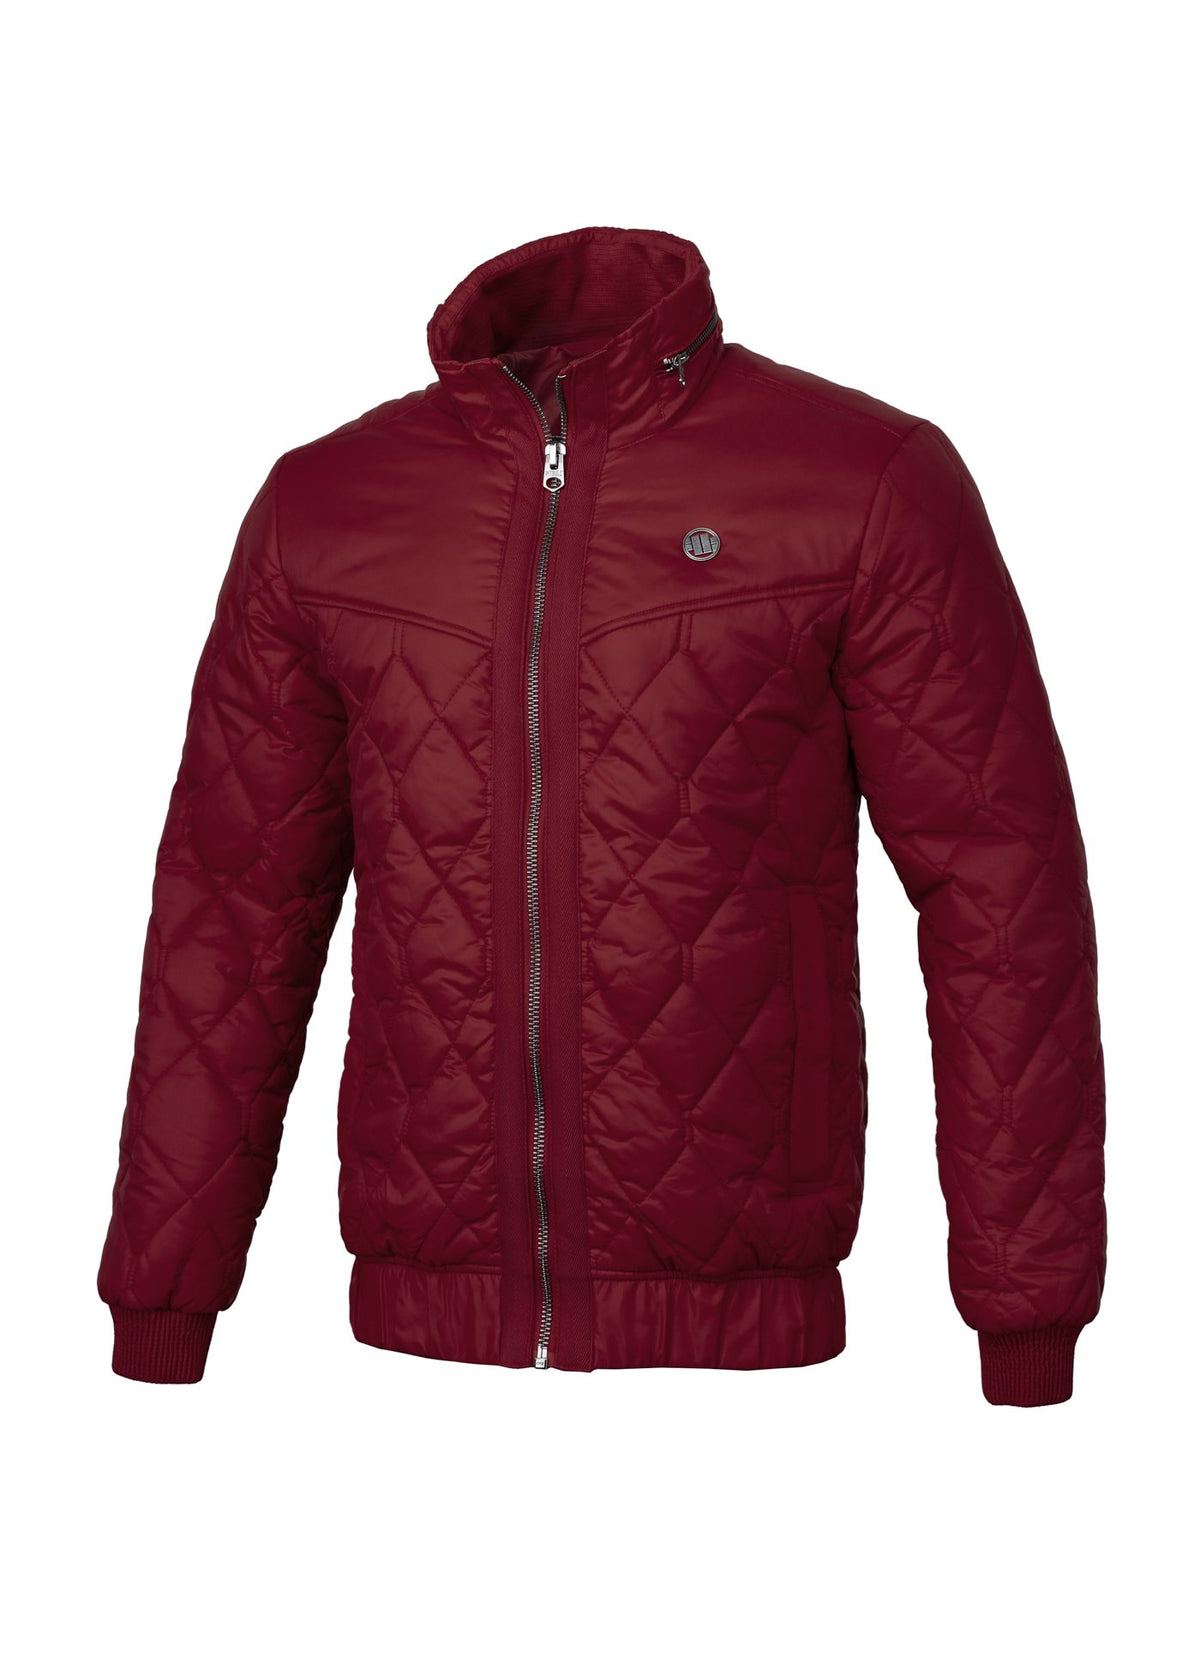 JACKET SUNSET BURGUNDY - Pitbull West Coast U.S.A.